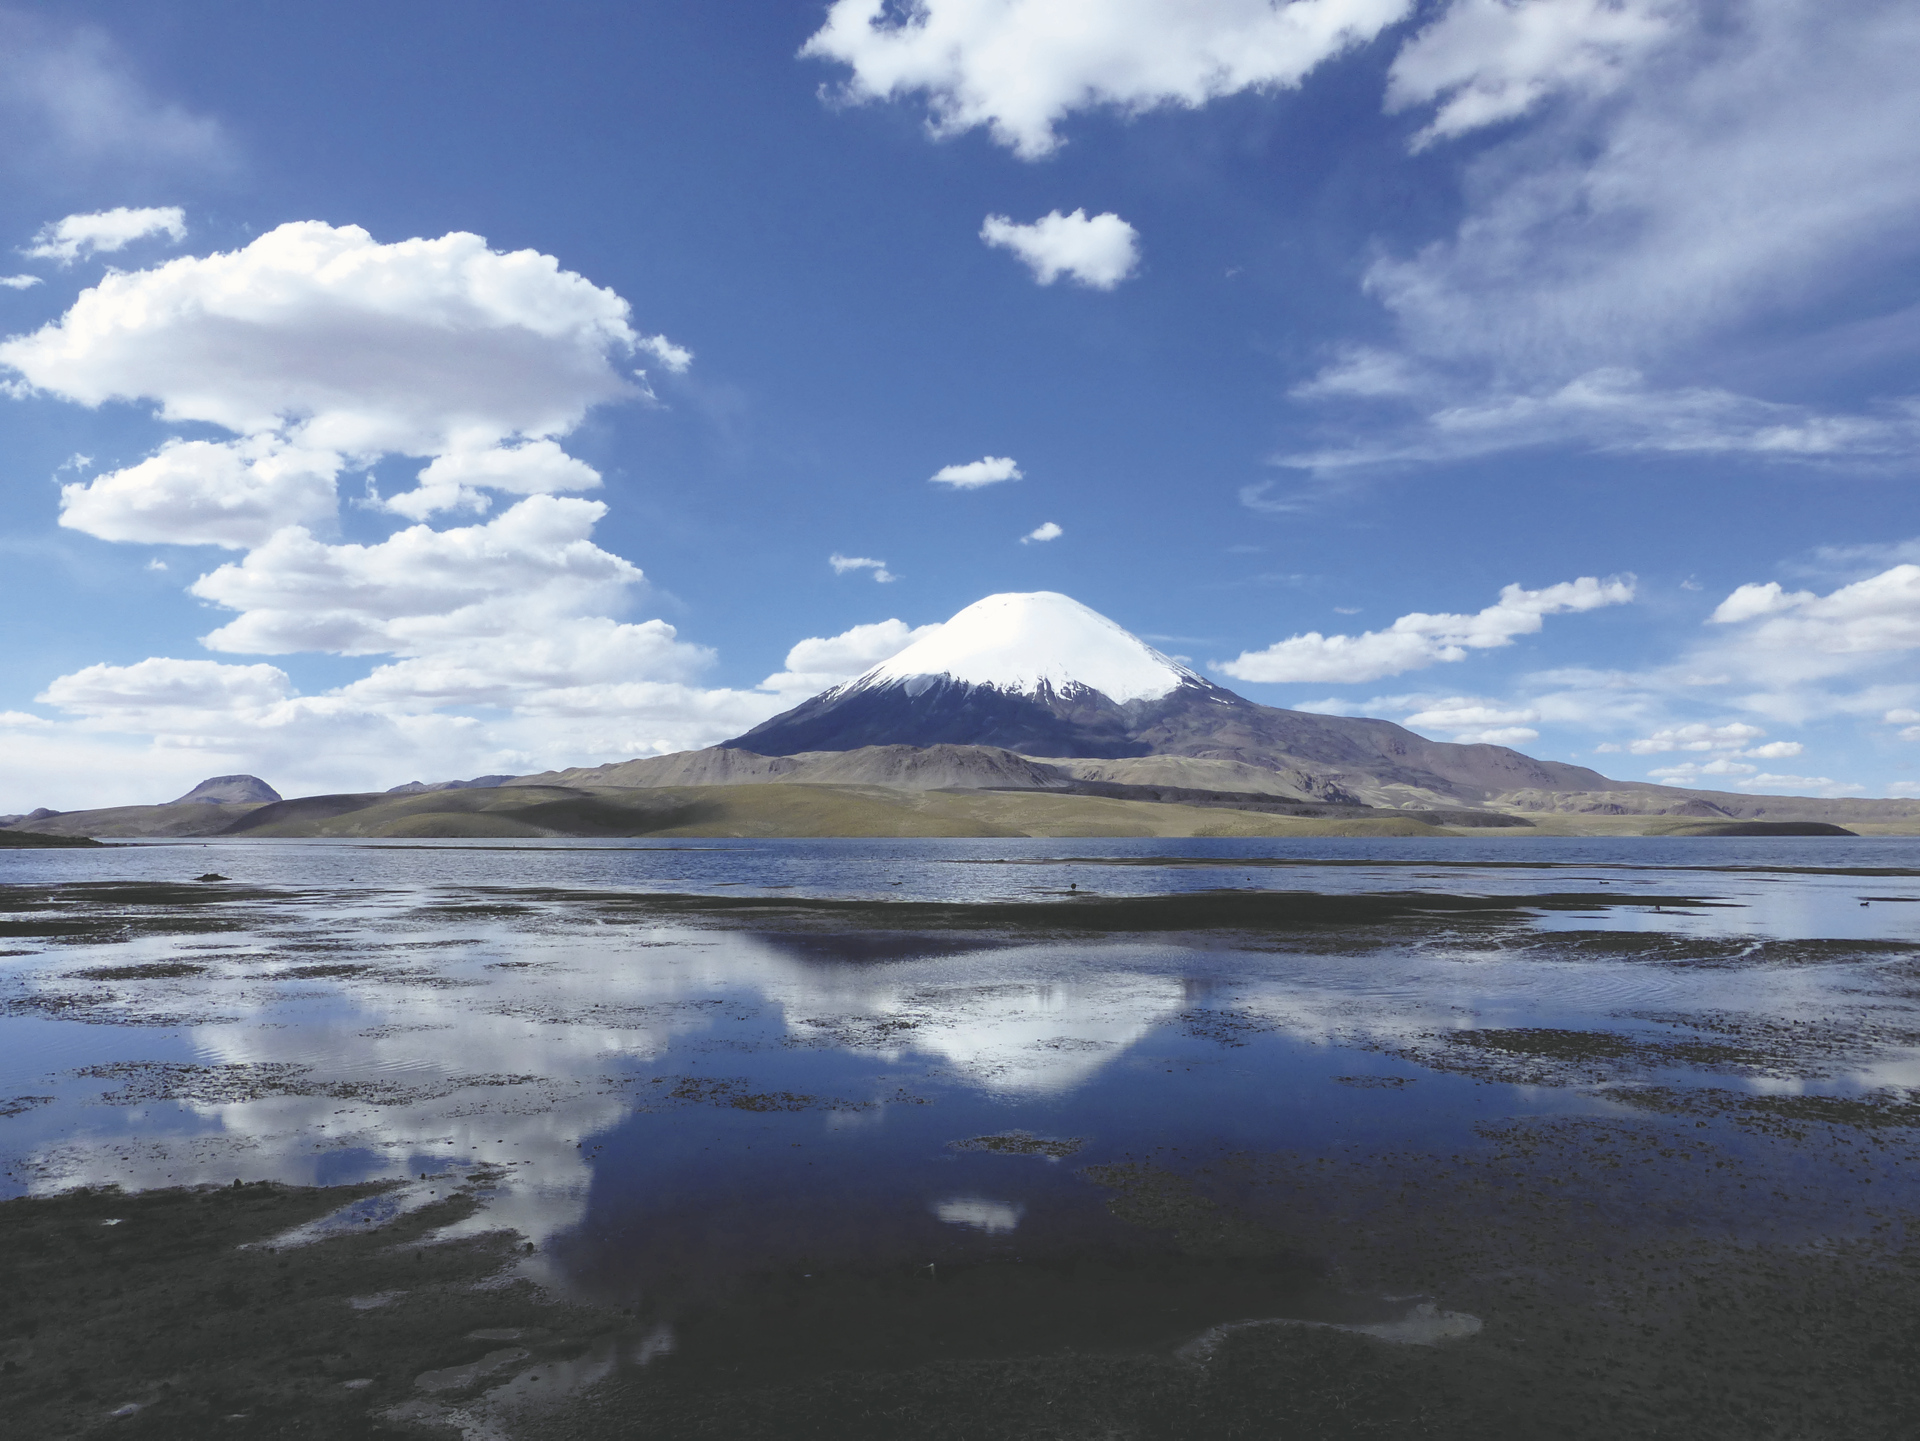 Vulkan Parinacota im Lauca Nationalpark